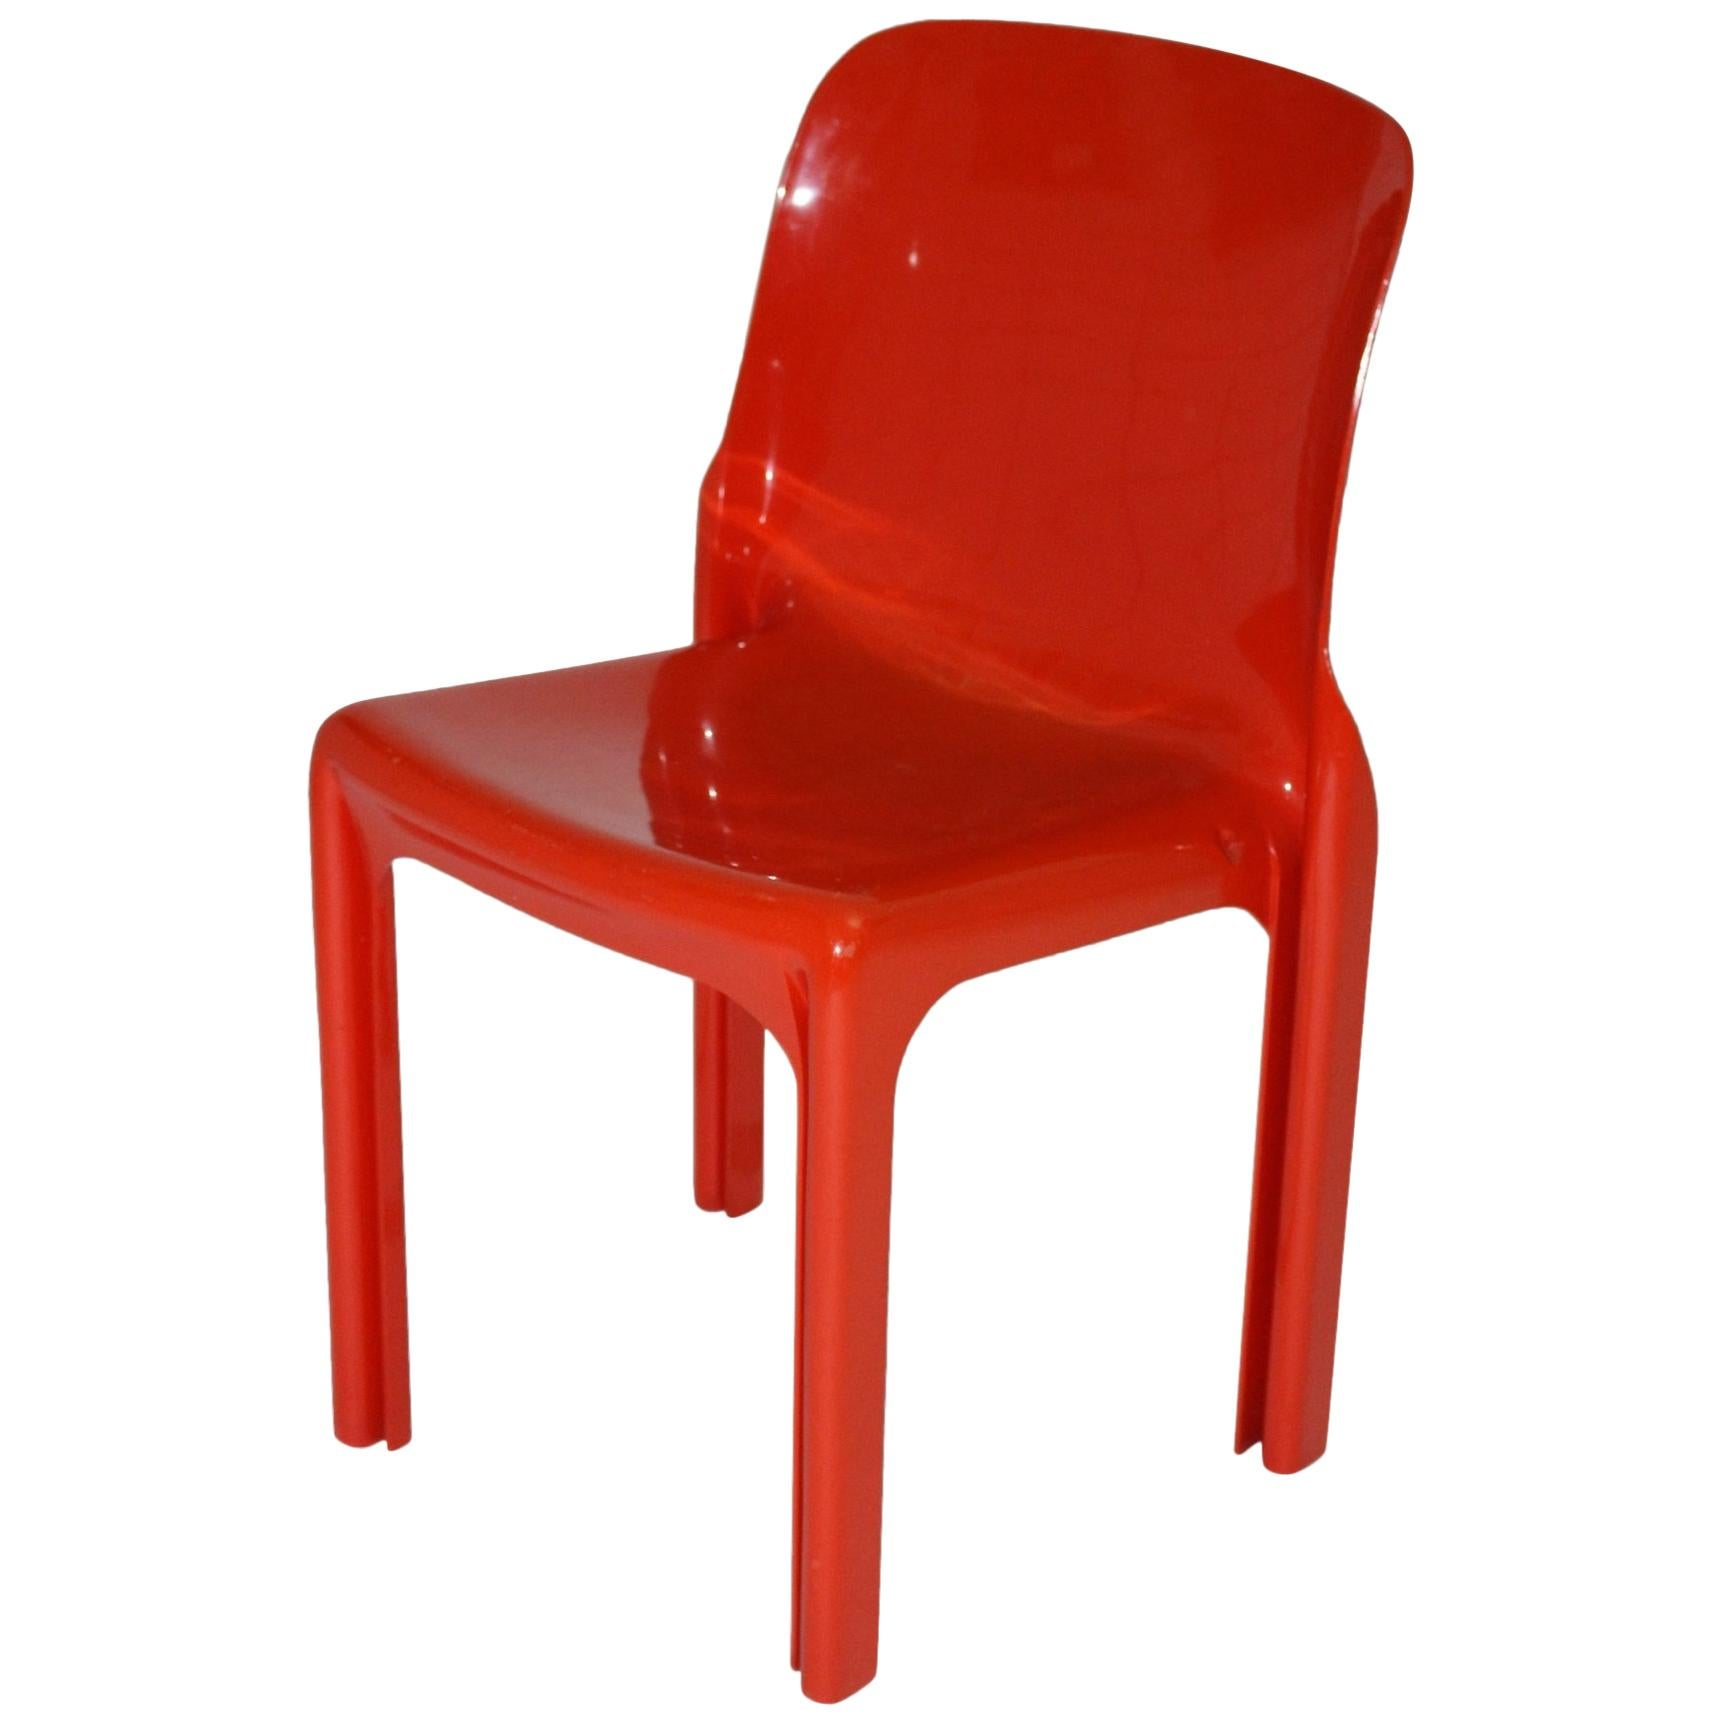 Space Age Red Plastic Vintage Chair Selene by Vico Magistretti, Italy